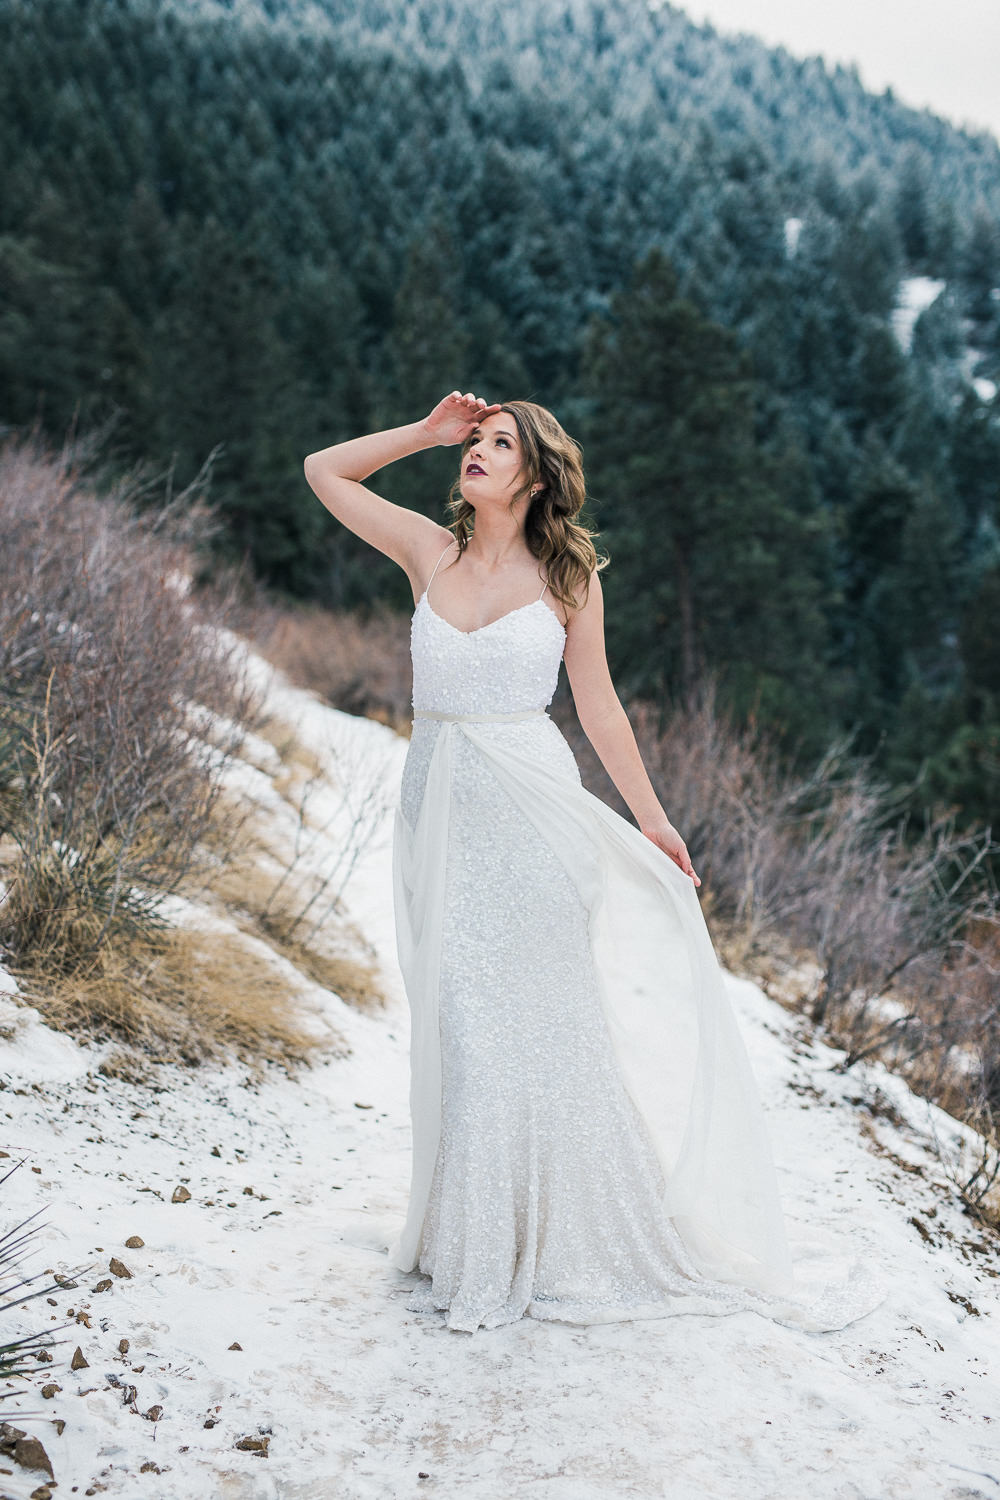 Emma and Grace Bridal Colorado Wedding Photographers